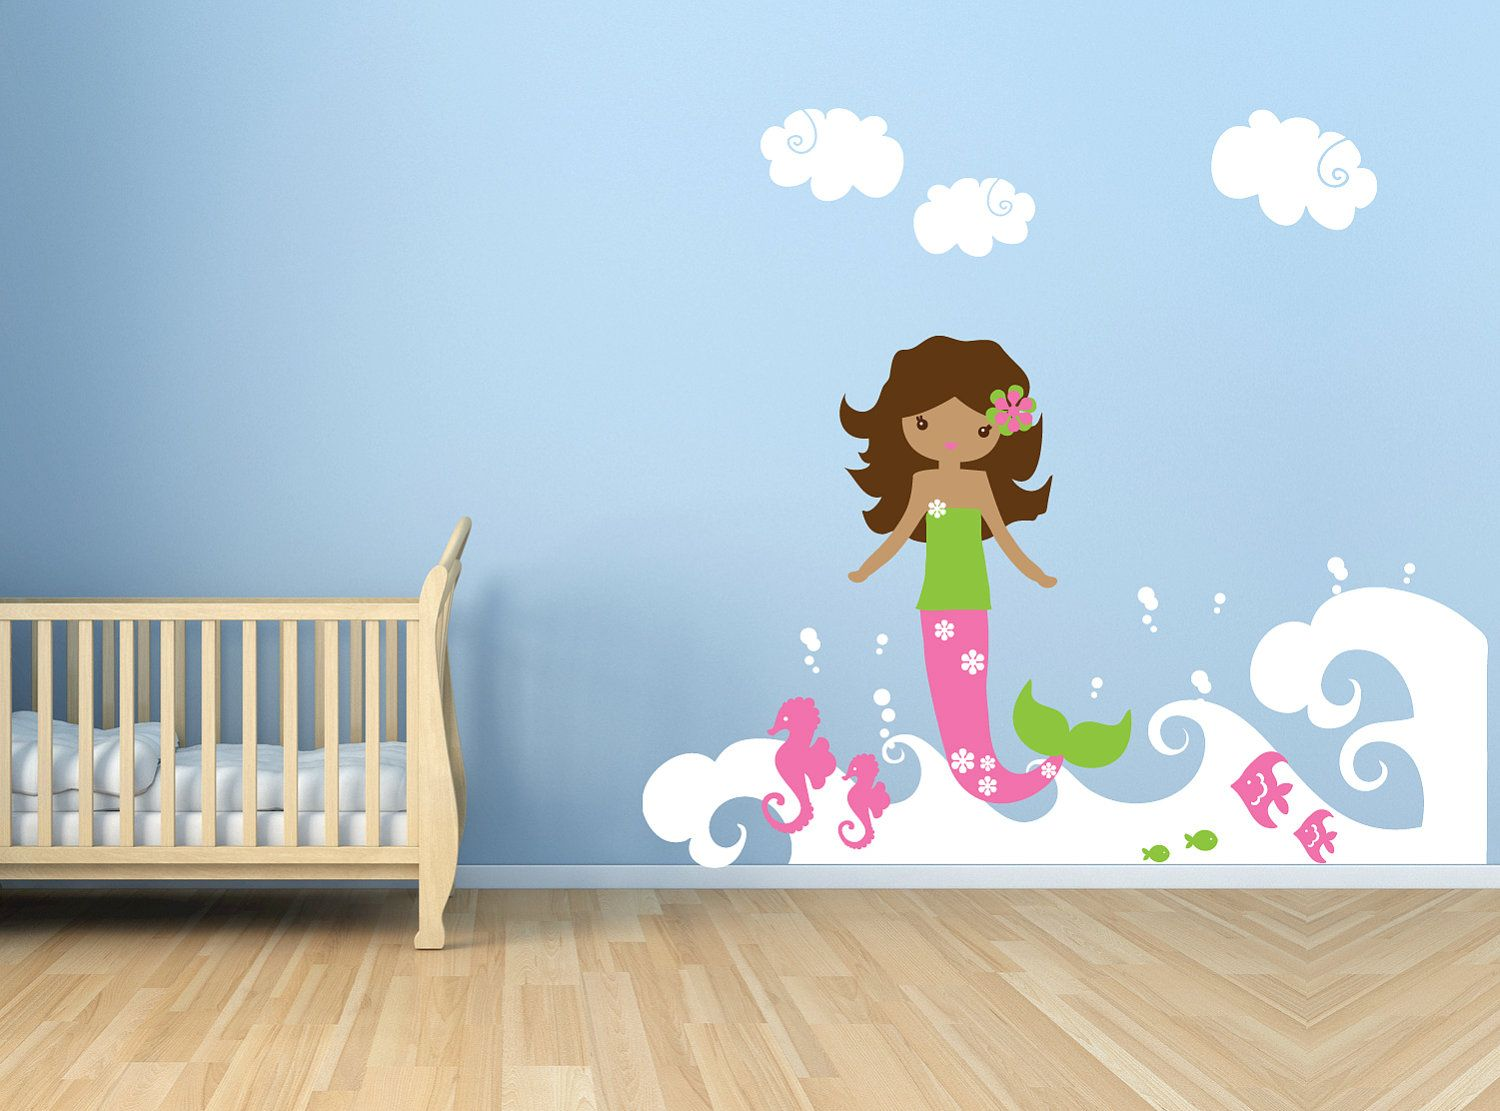 Mermaid wall decal childrens vinyl wall art sticker ocean mermaid wall decal childrens vinyl wall art sticker ocean mermaid wall decal set amipublicfo Image collections